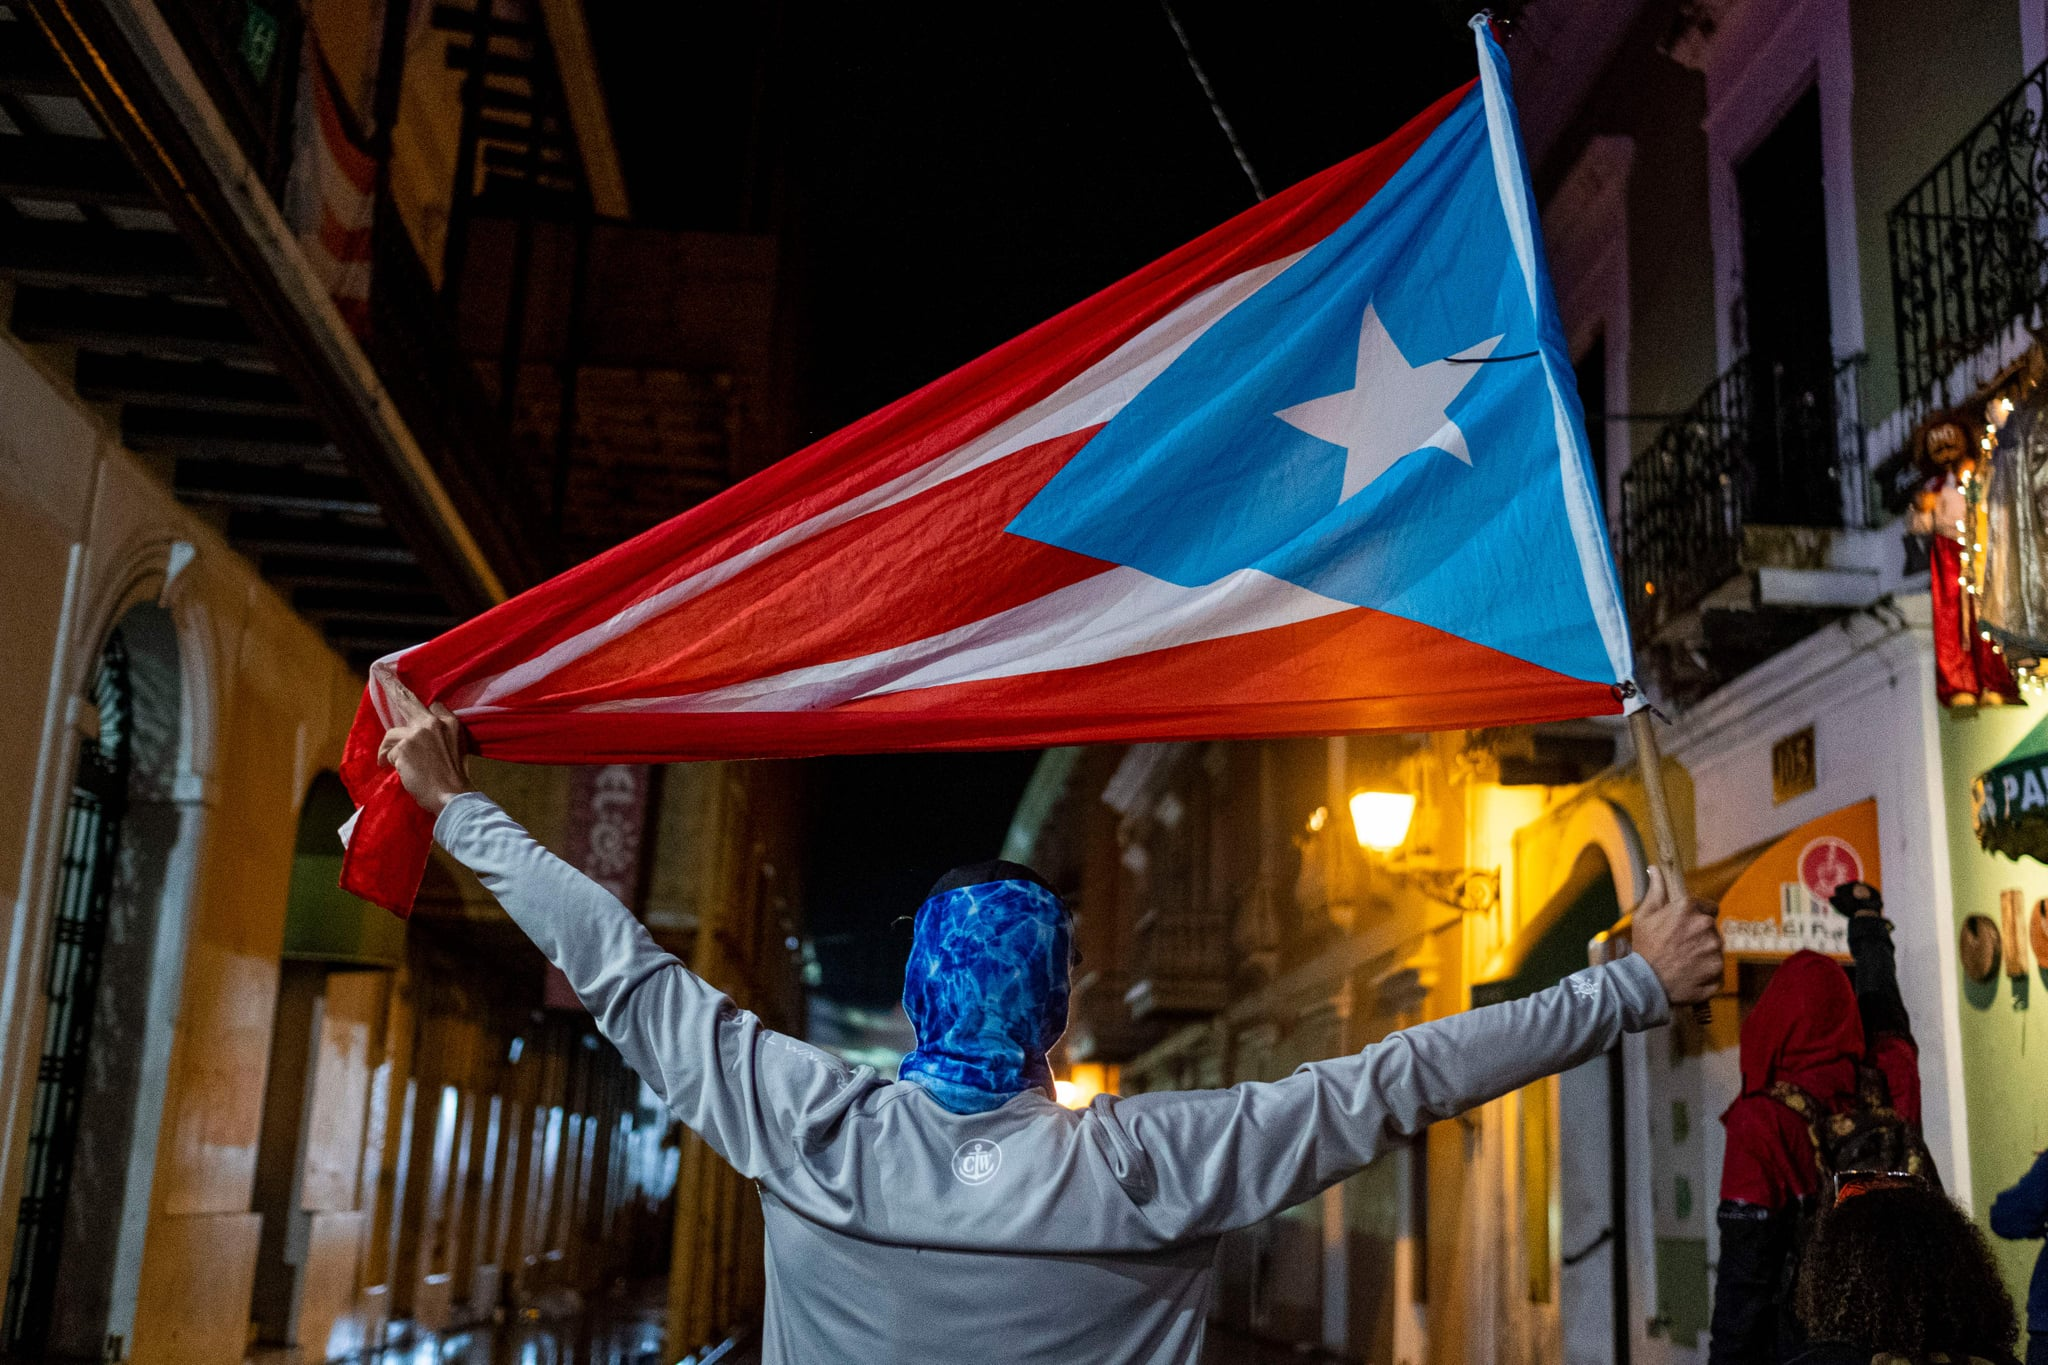 TOPSHOT - A protester holds a Puerto Rican flag during a demonstration against Puerto Rico's governor and the government in front of the governor's mansion in San Juan, Puerto Rico on January 23, 2020. - Residents are protesting after a warehouse full of relief supplies, reportedly dating back to Hurricane Maria in 2017, were found having been left undistributed to those in need. (Photo by Ricardo ARDUENGO / AFP) (Photo by RICARDO ARDUENGO/AFP via Getty Images)